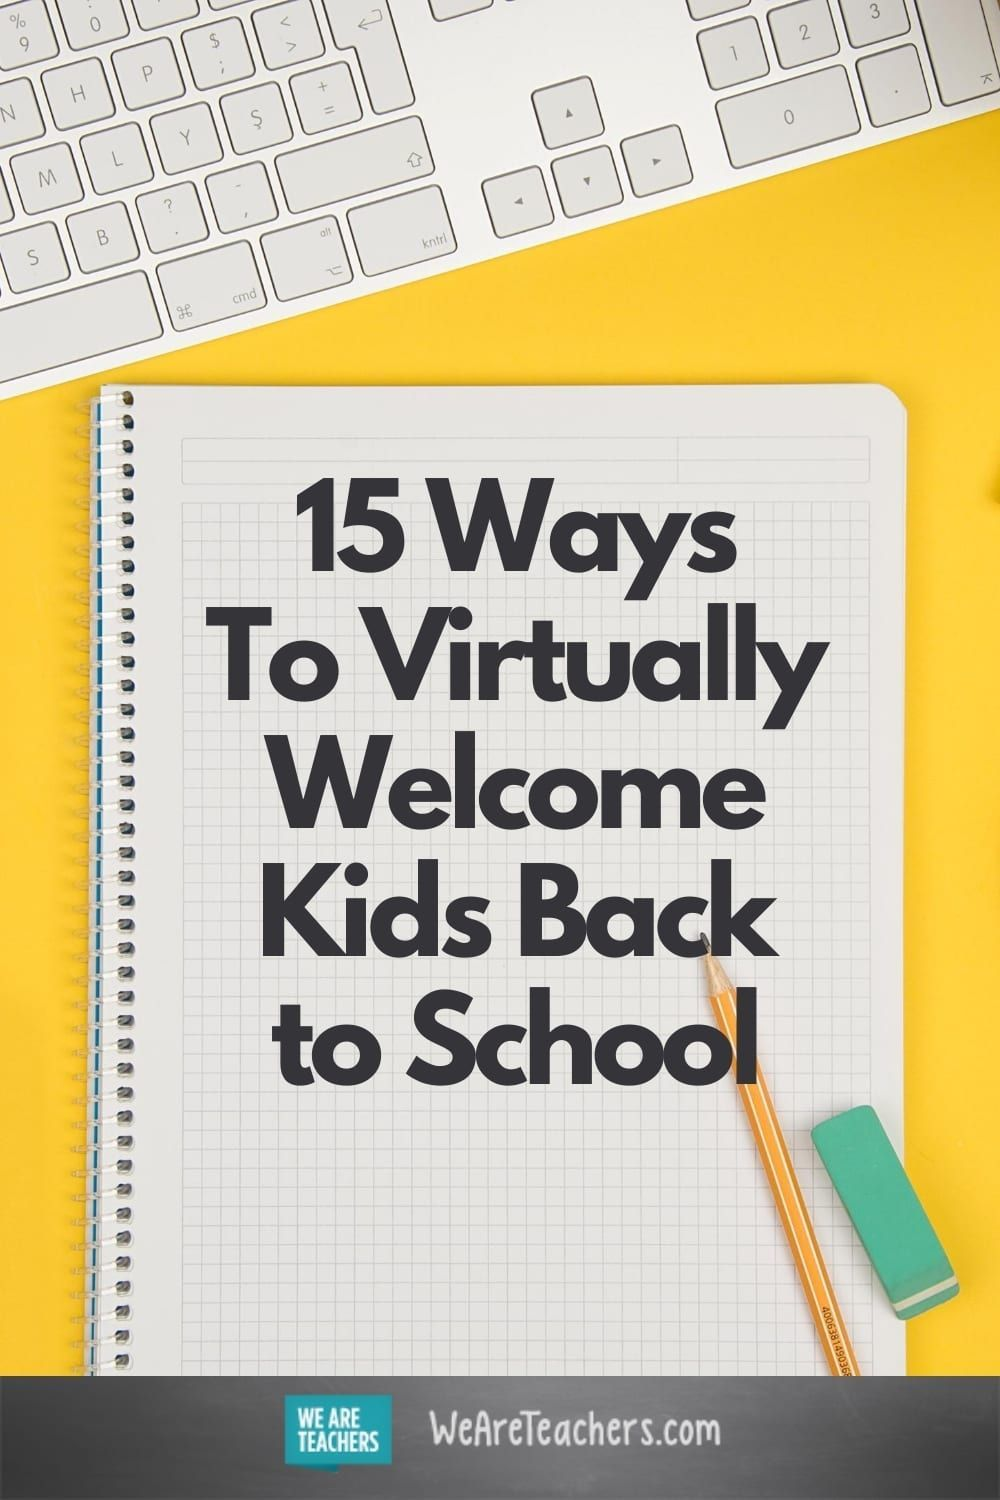 15 Ways To Virtually Welcome Kids Back To School In 2020 Digital Learning Classroom Online Teaching Virtual School